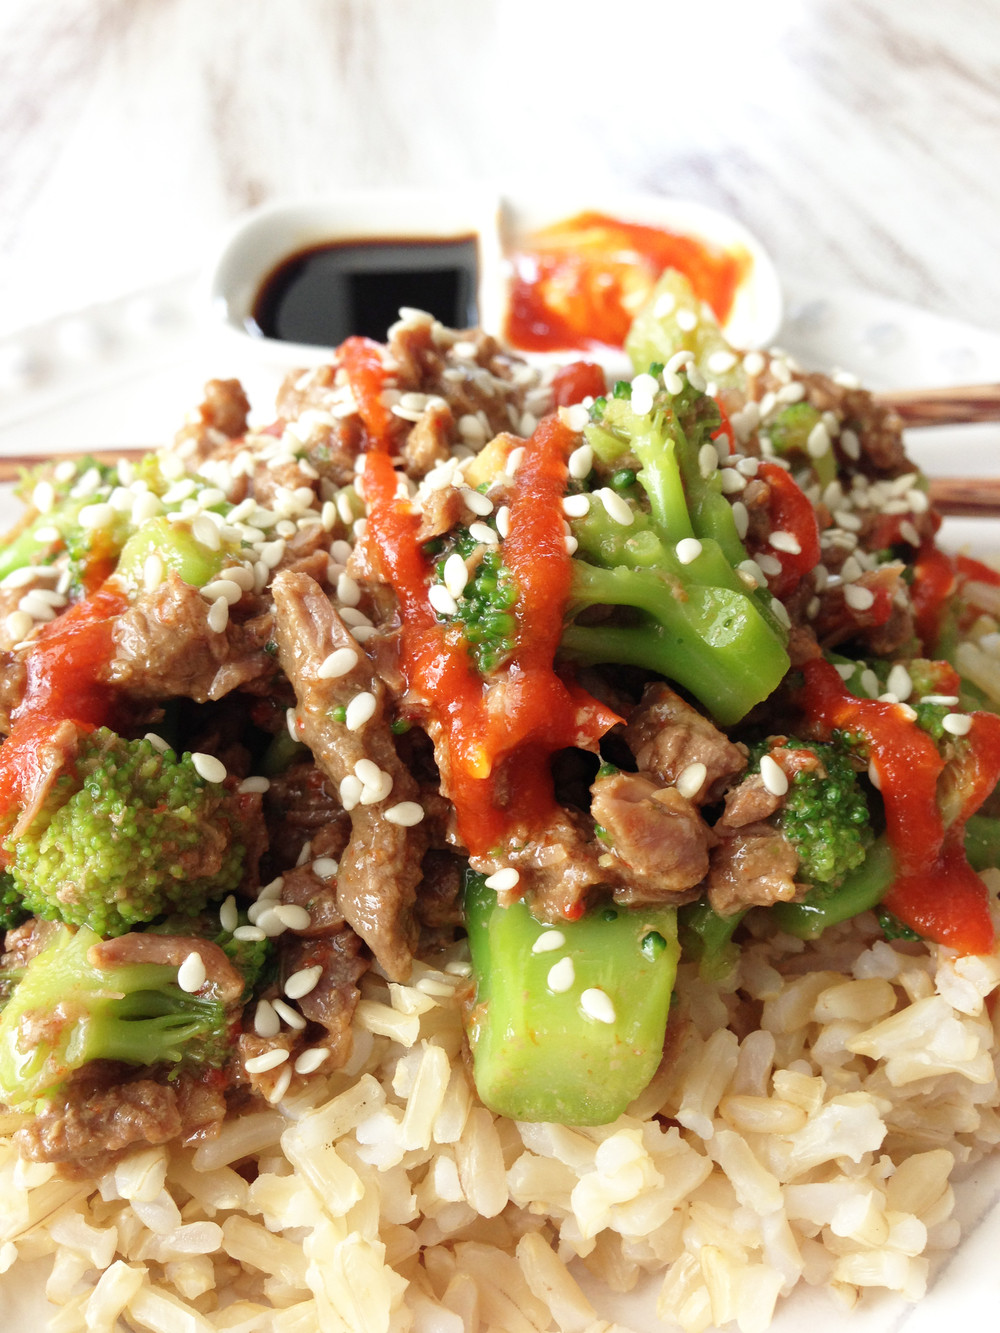 Beef And Broccoli Crock Pot  Healthified Crock Pot Beef & Broccoli — The Skinny Fork